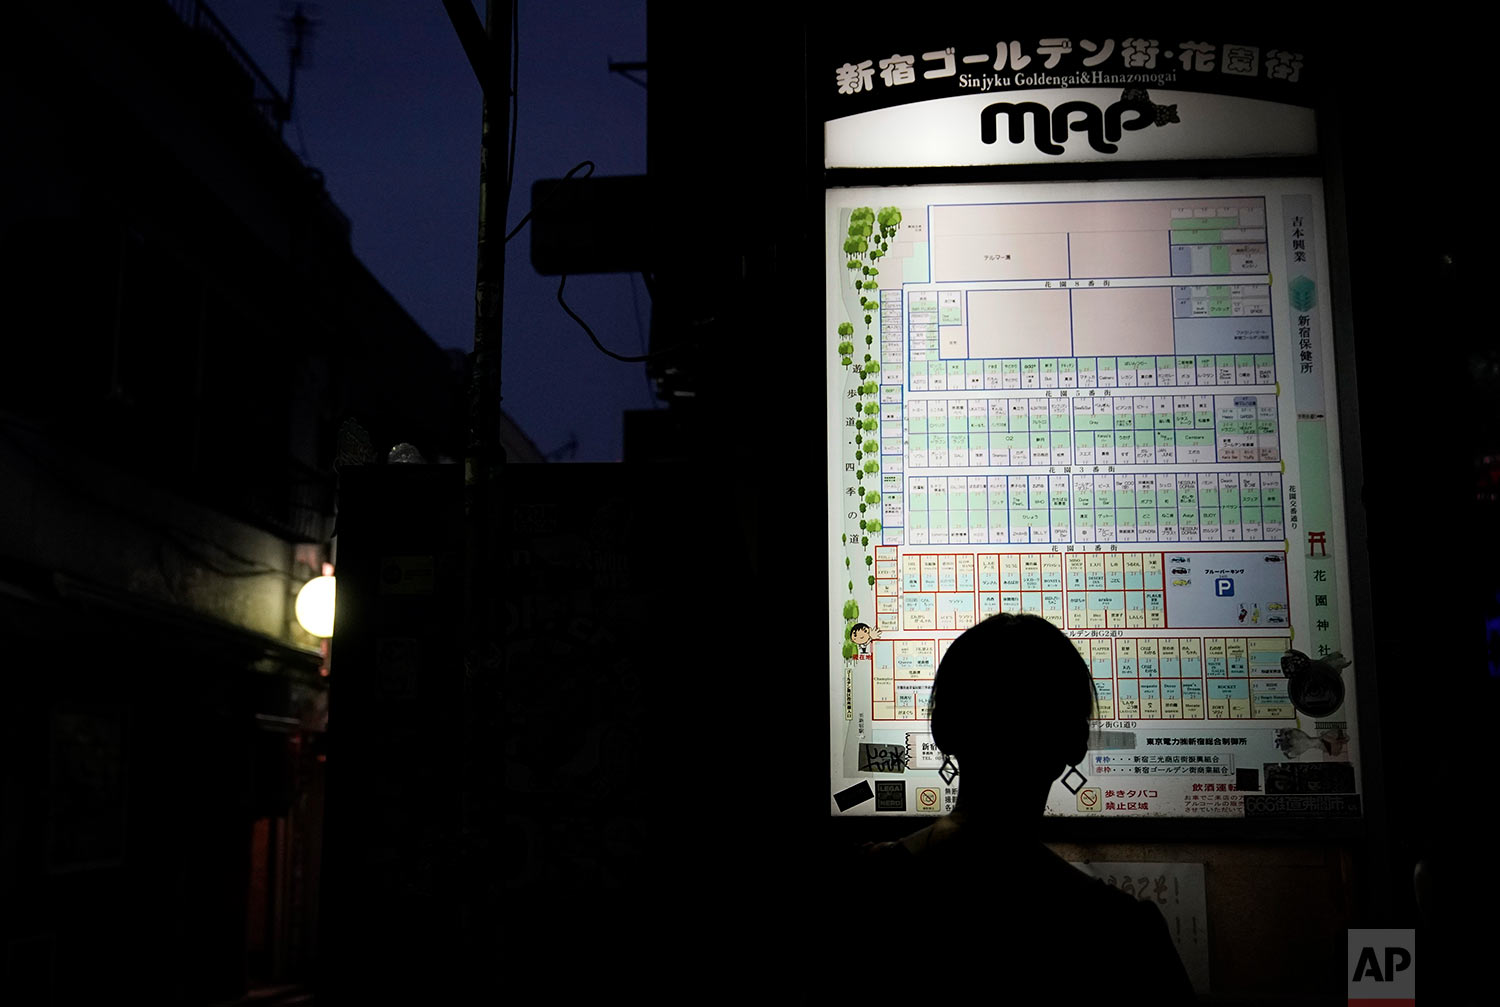 A tourist is silhouetted as she looks at the map of the Golden Gai in the Shinjuku district of Tokyo, July 28, 2019. (AP Photo/Jae C. Hong)